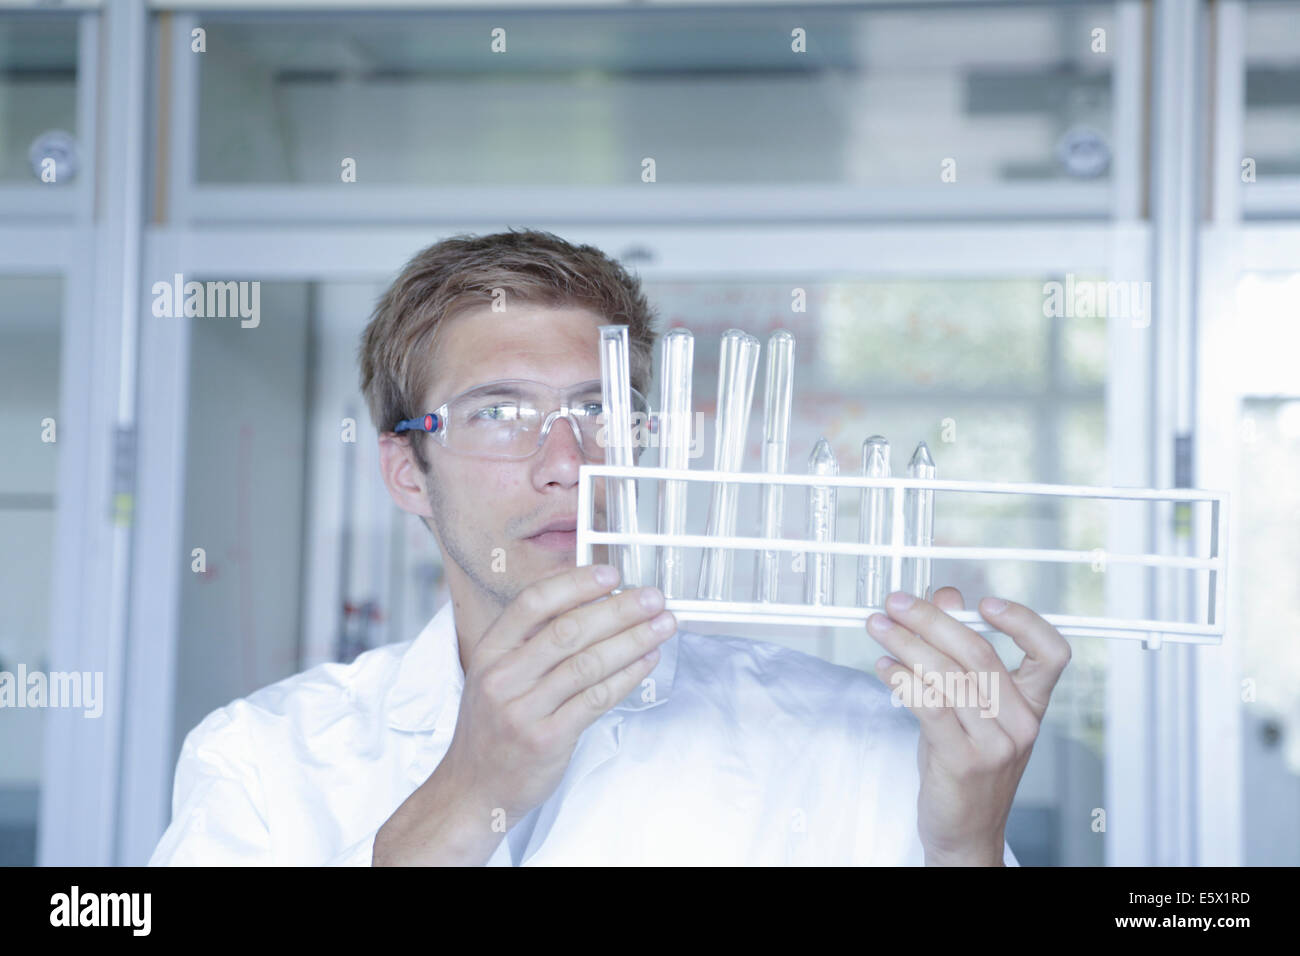 Young male scientist analyzing test tubes in lab - Stock Image